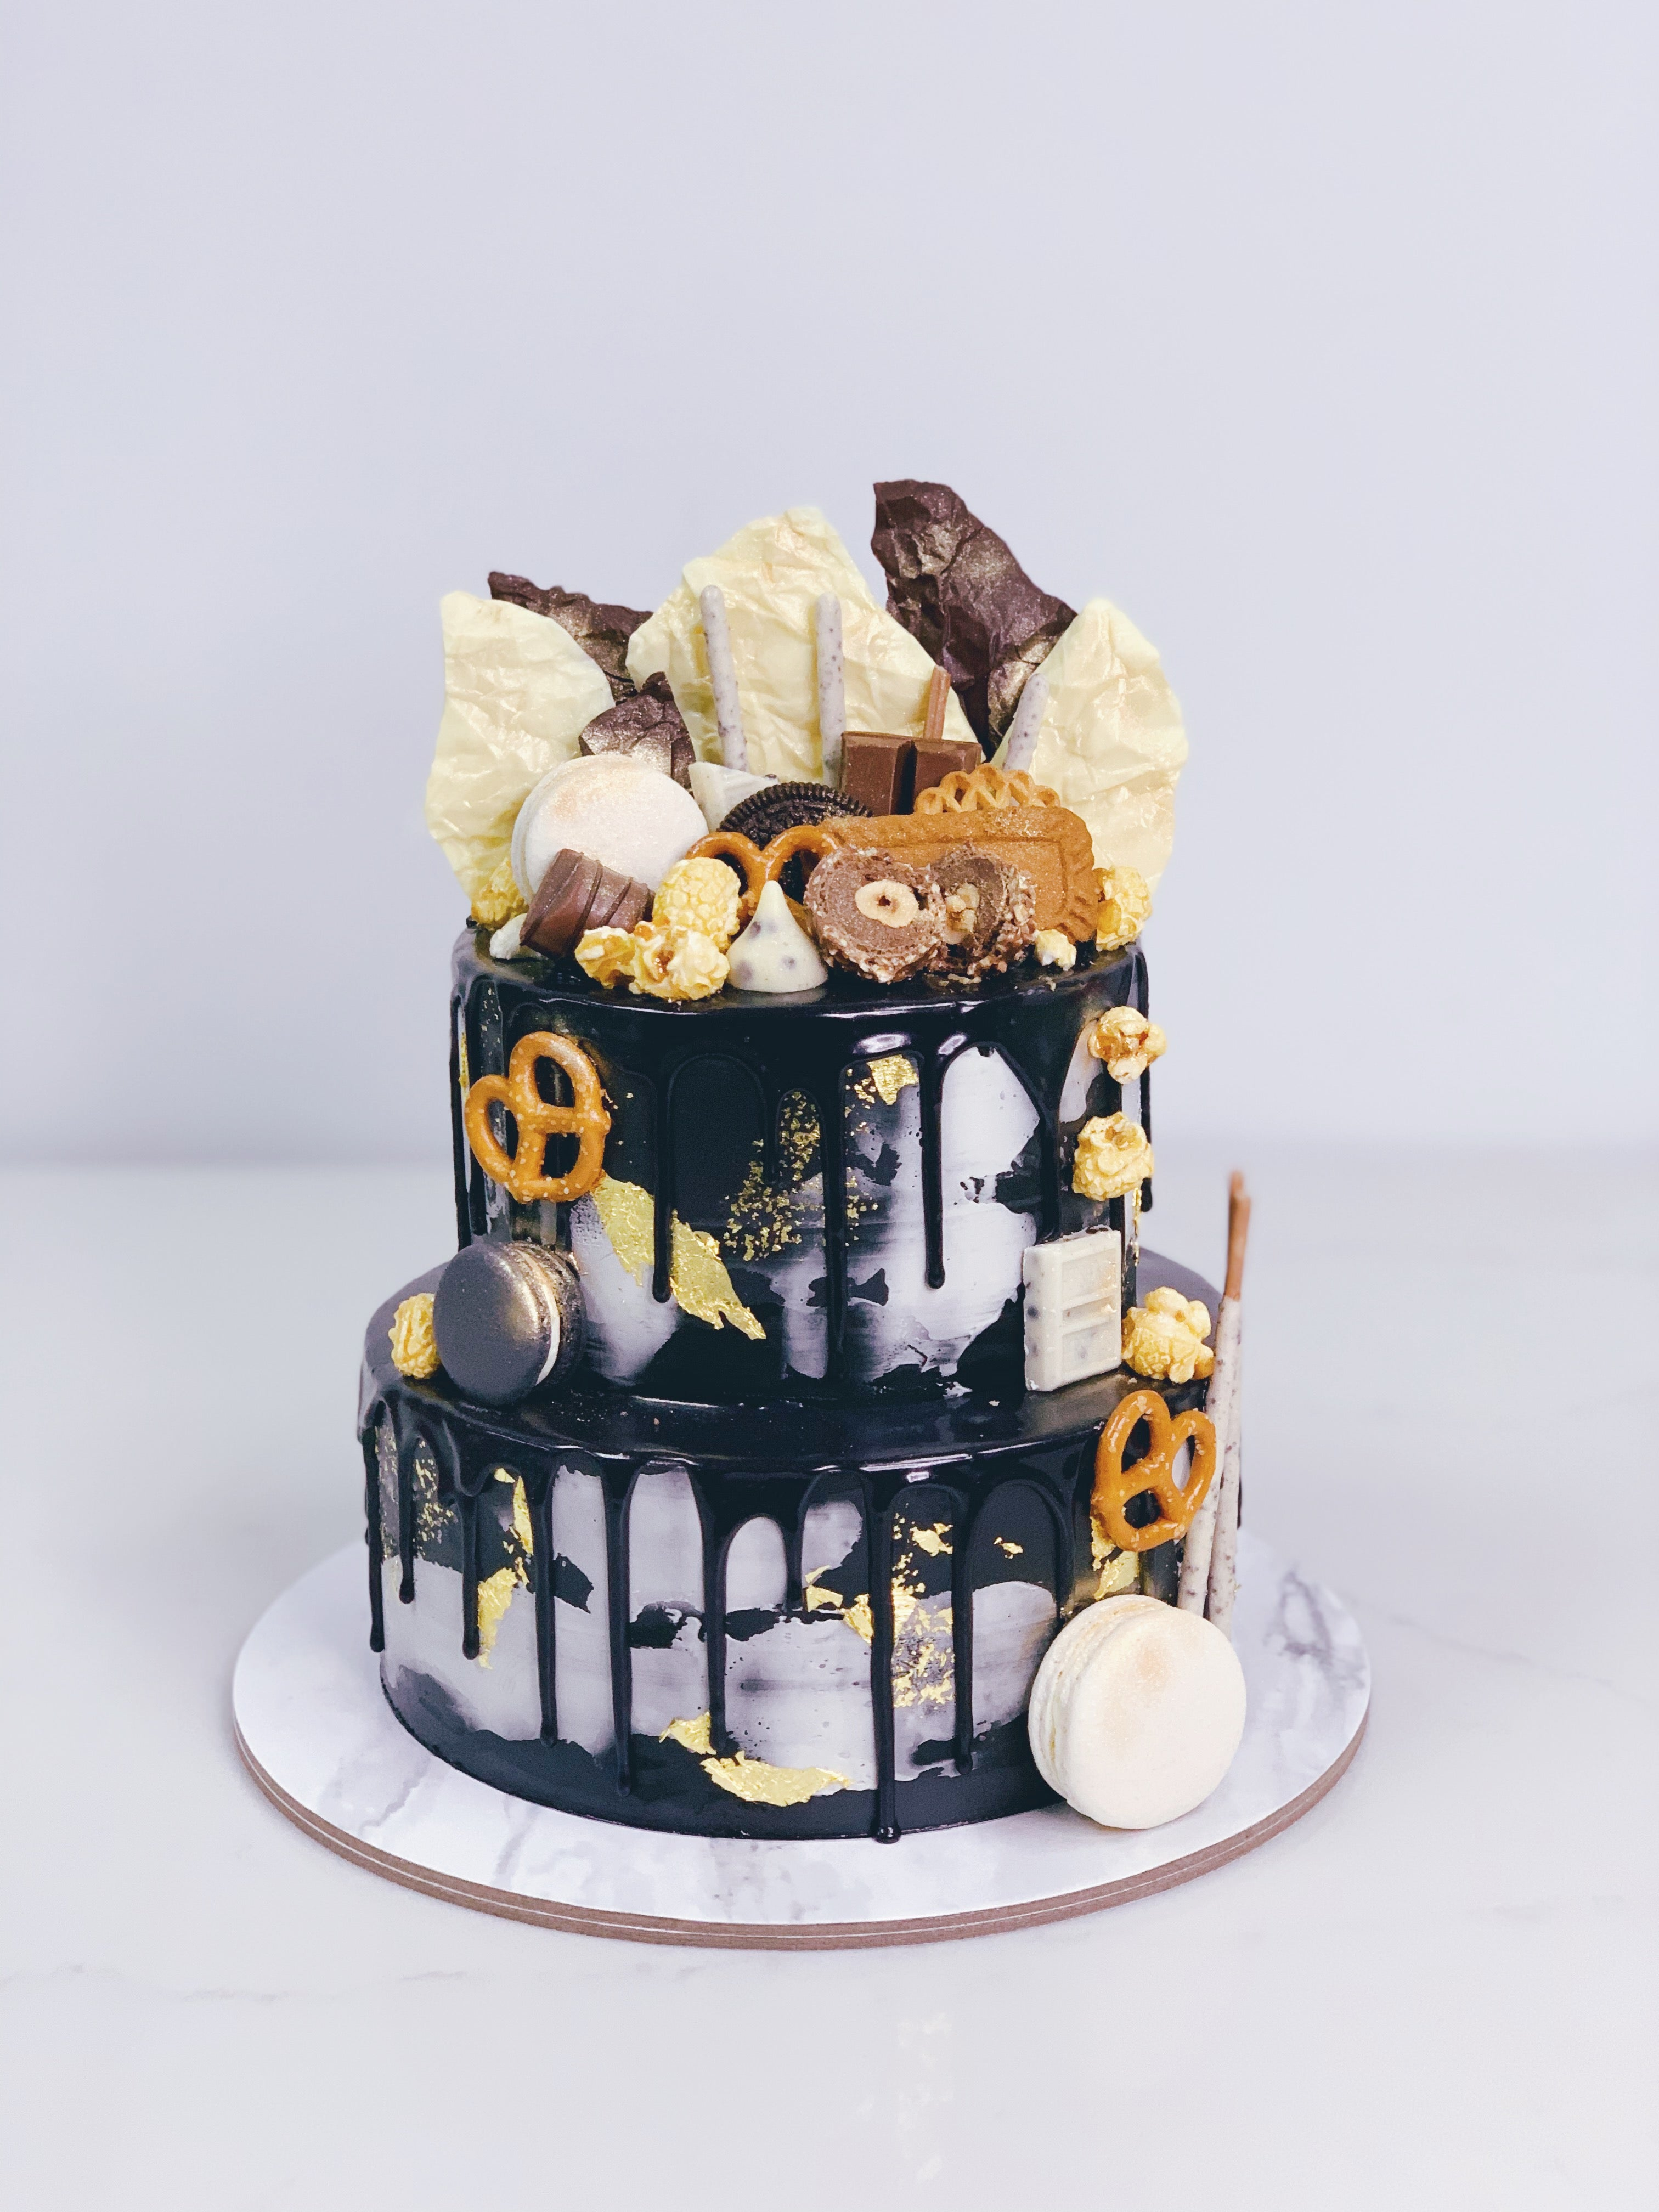 Monochrome Drip Cake with Toppings and Chocolate Shards